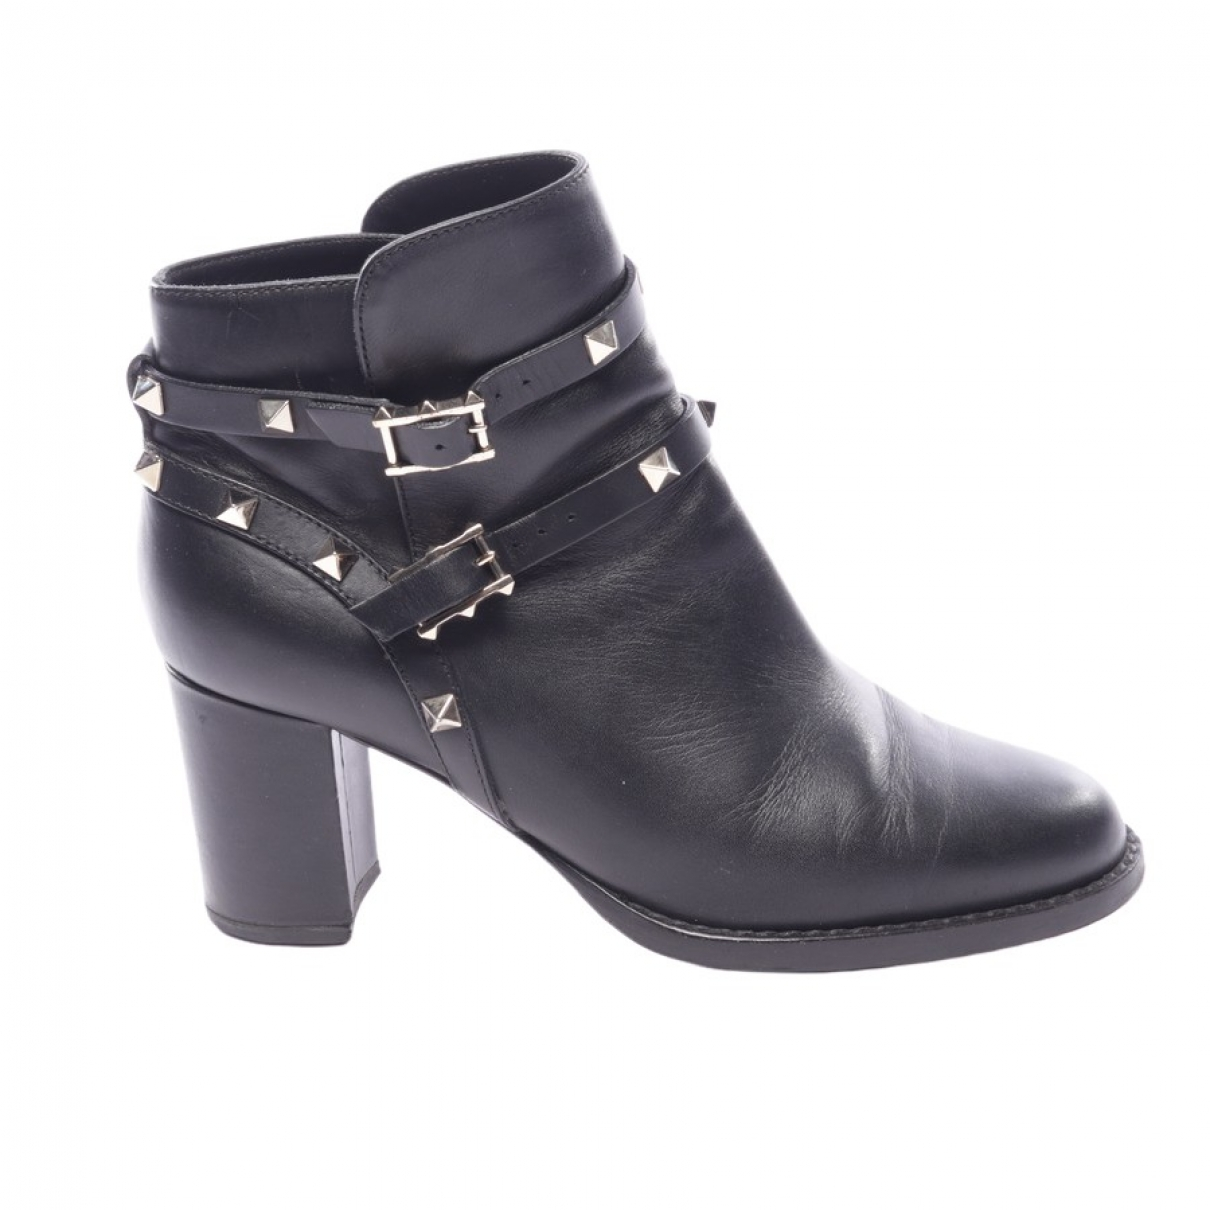 Valentino Garavani Rockstud Black Leather Ankle boots for Women 36.5 EU